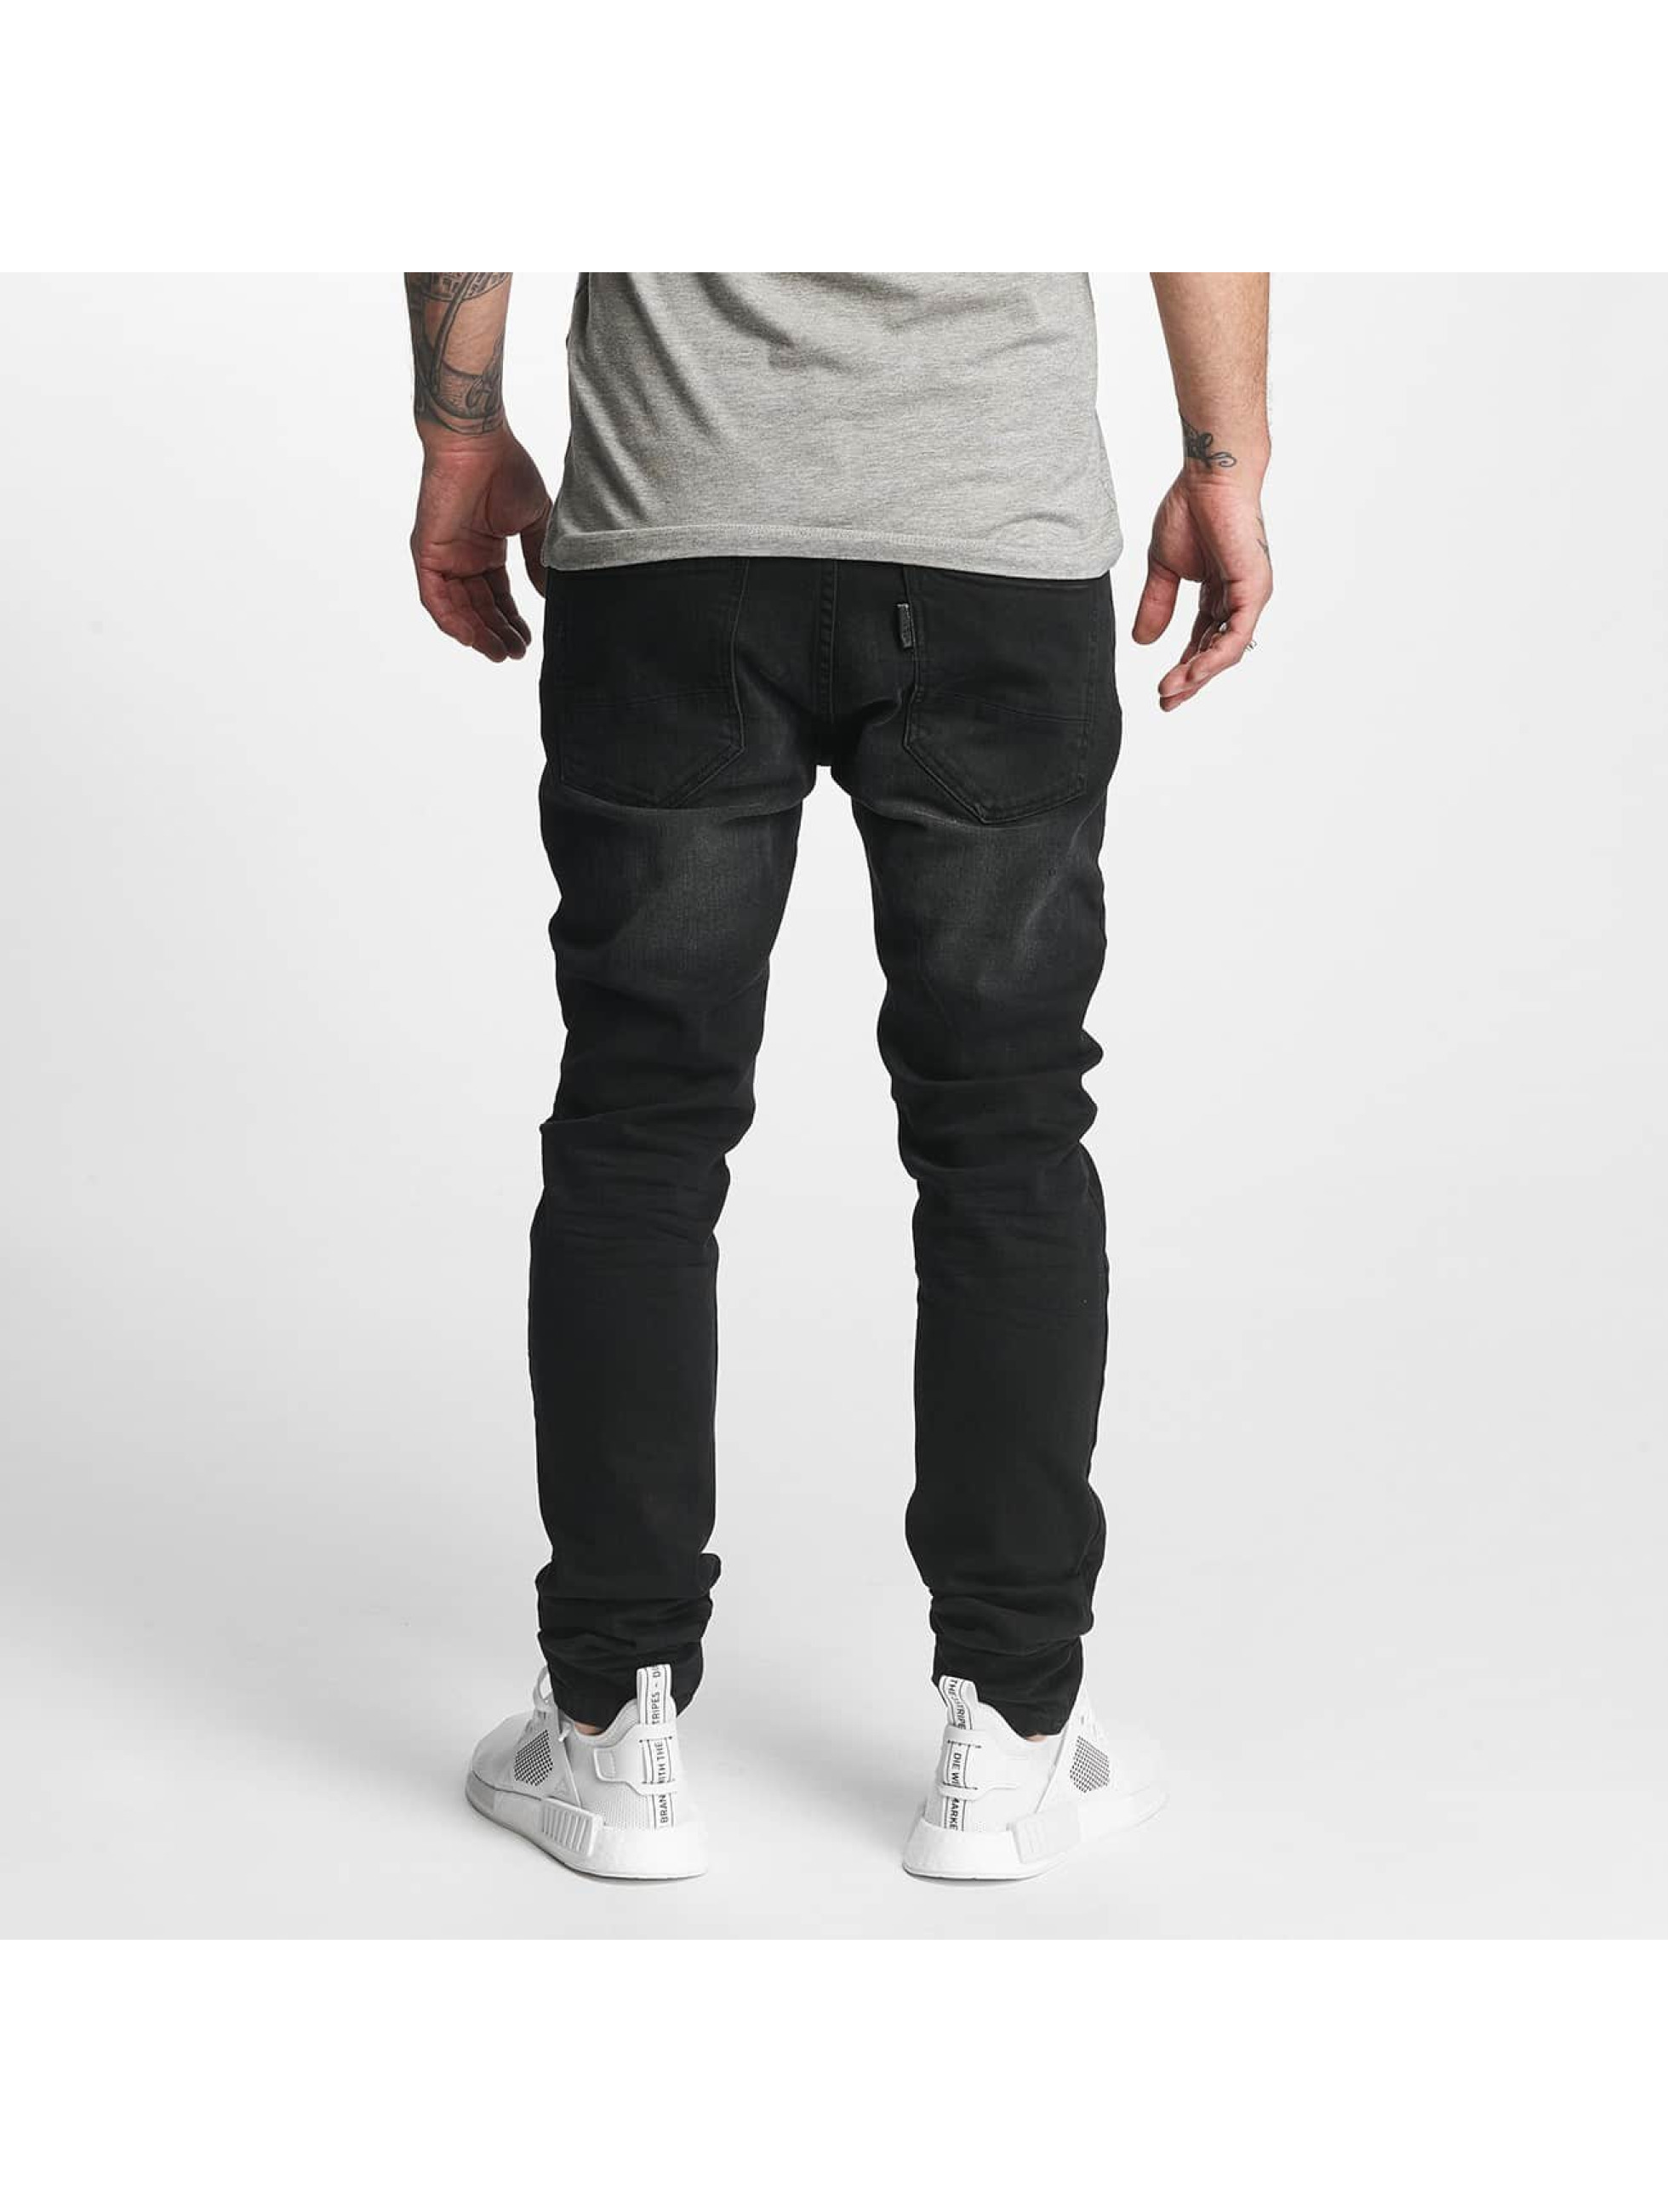 ID Denim Straight Fit Jeans Skinny Low Rise Tapered Leg schwarz